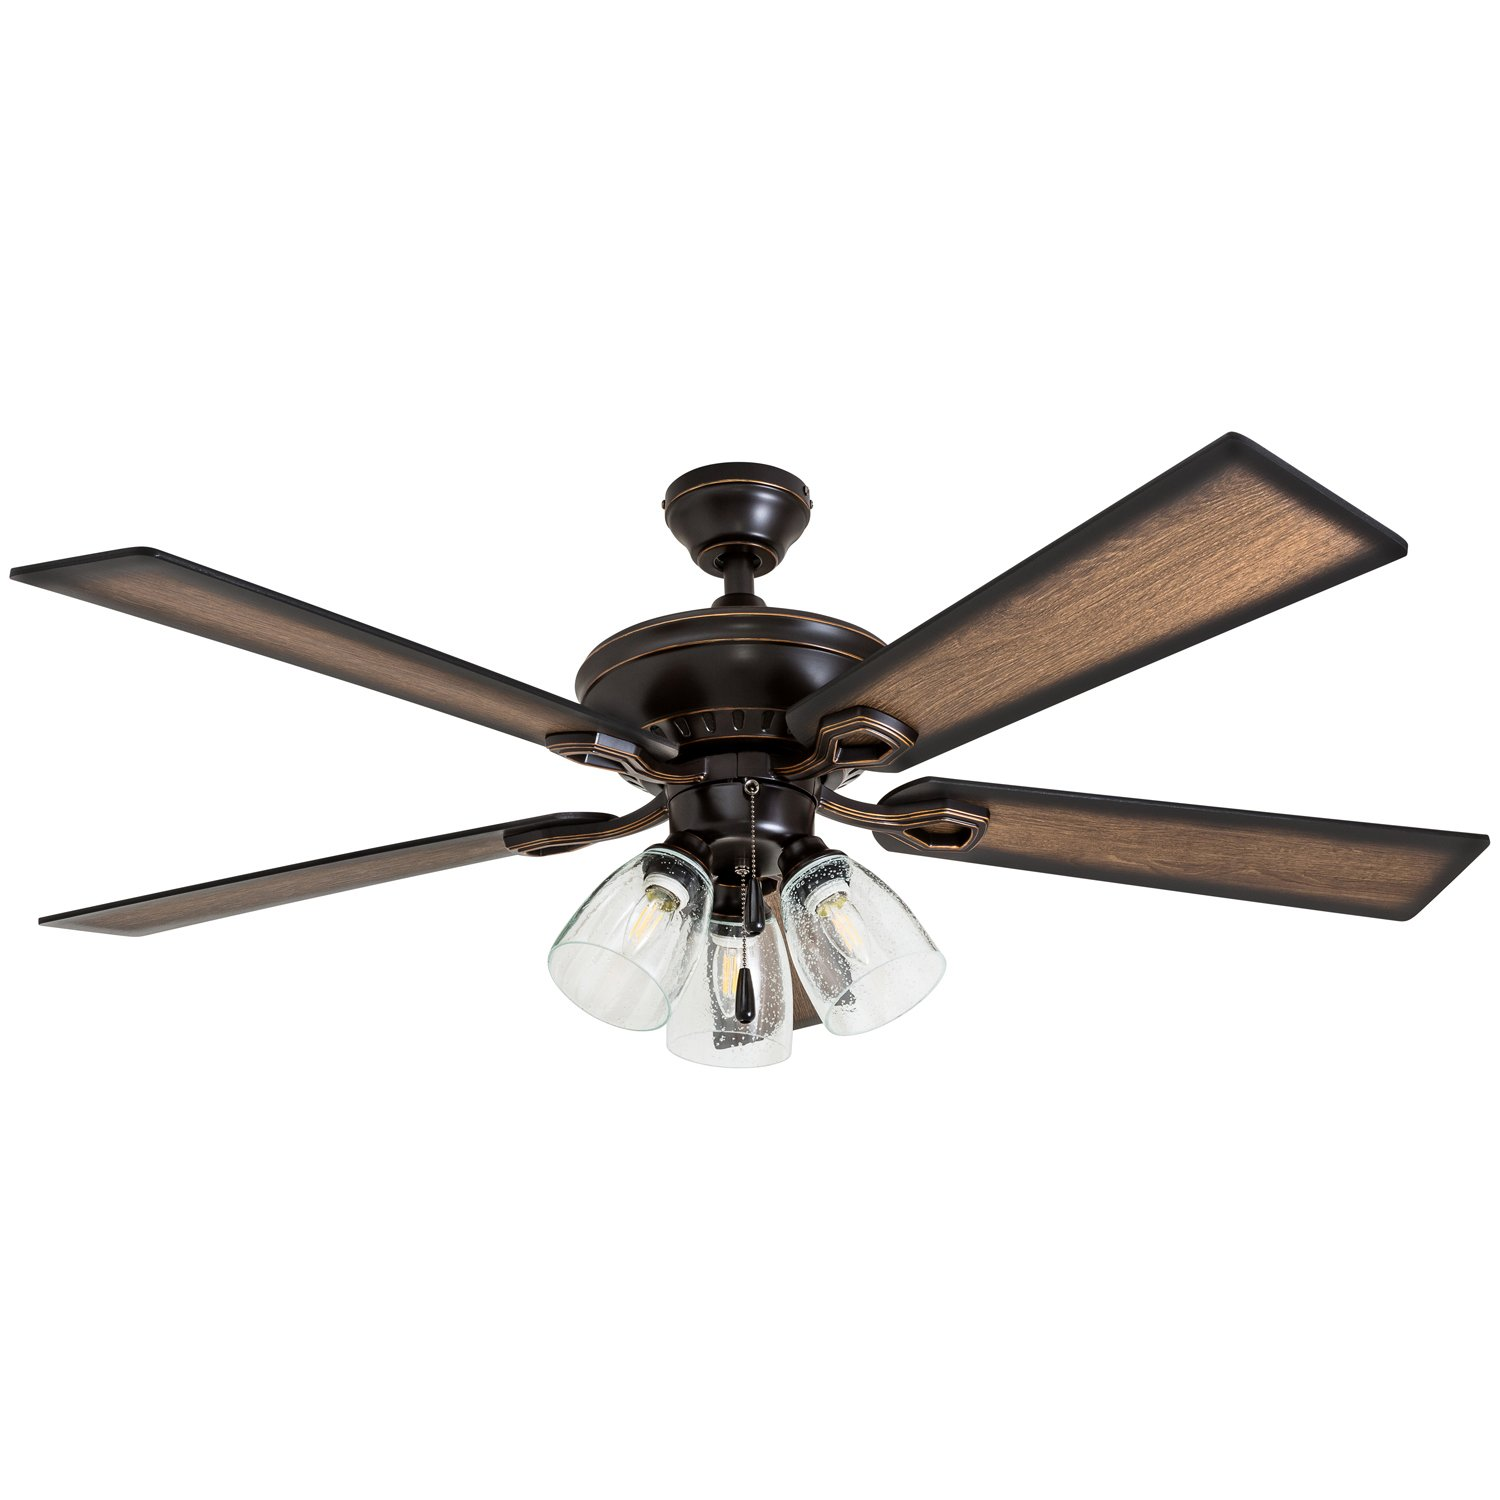 Prominence Home 40278-01 Glenmont Rustic Ceiling Fan with Barnwood Blades, LED Edison Bulbs, 3 Seeded Glass Fixtures, 52 Inches, 5 Blade, Oil-Rubbed Bronze